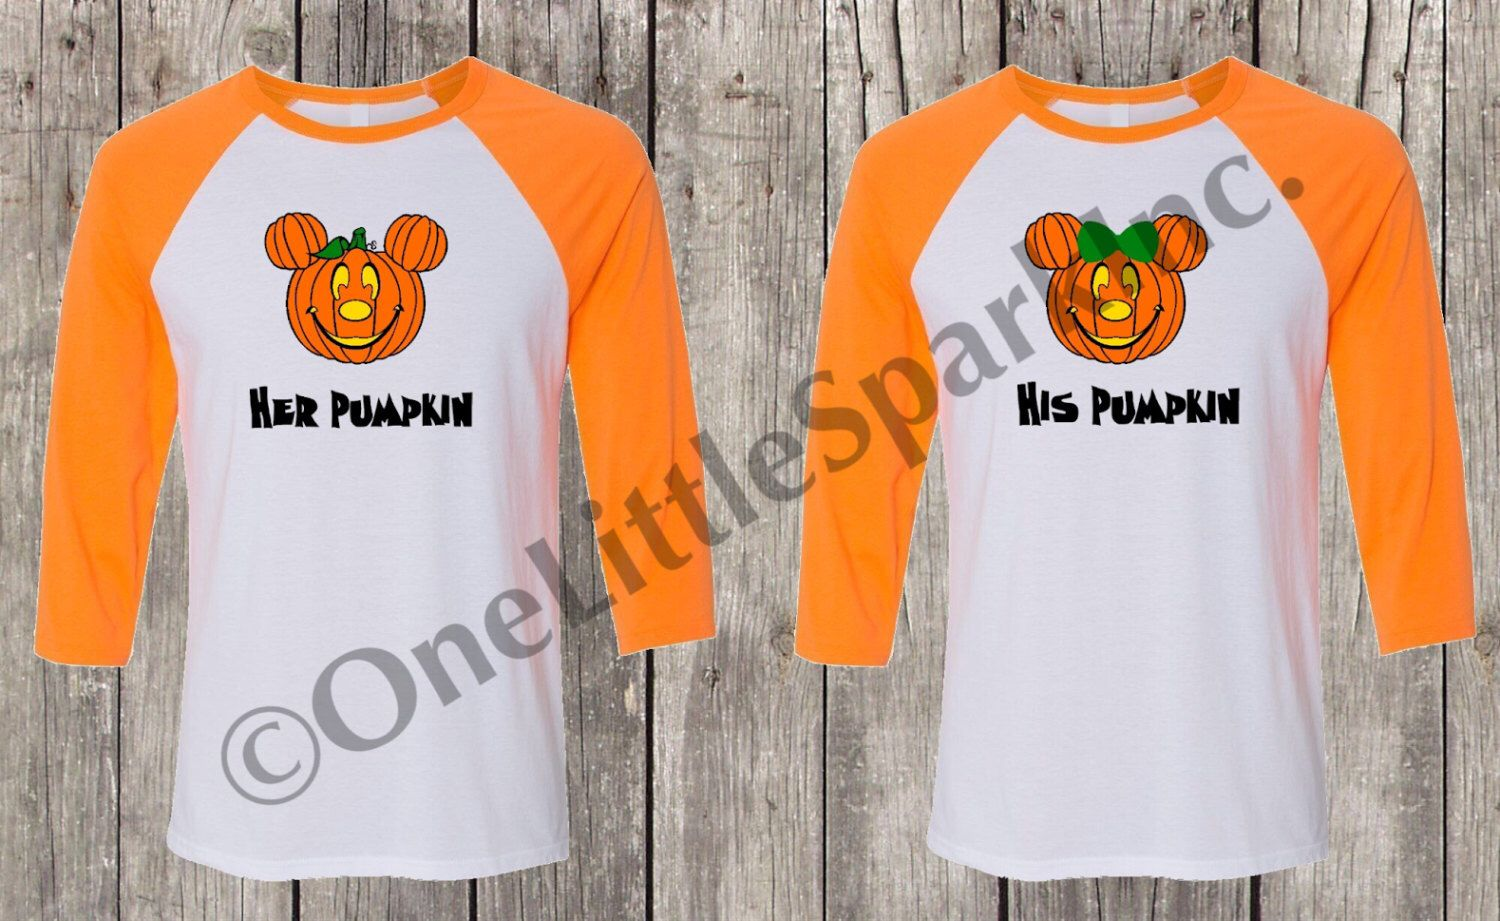 Disney Halloween Shirts Etsy.Disney Halloween Shirts Etsy Toffee Art